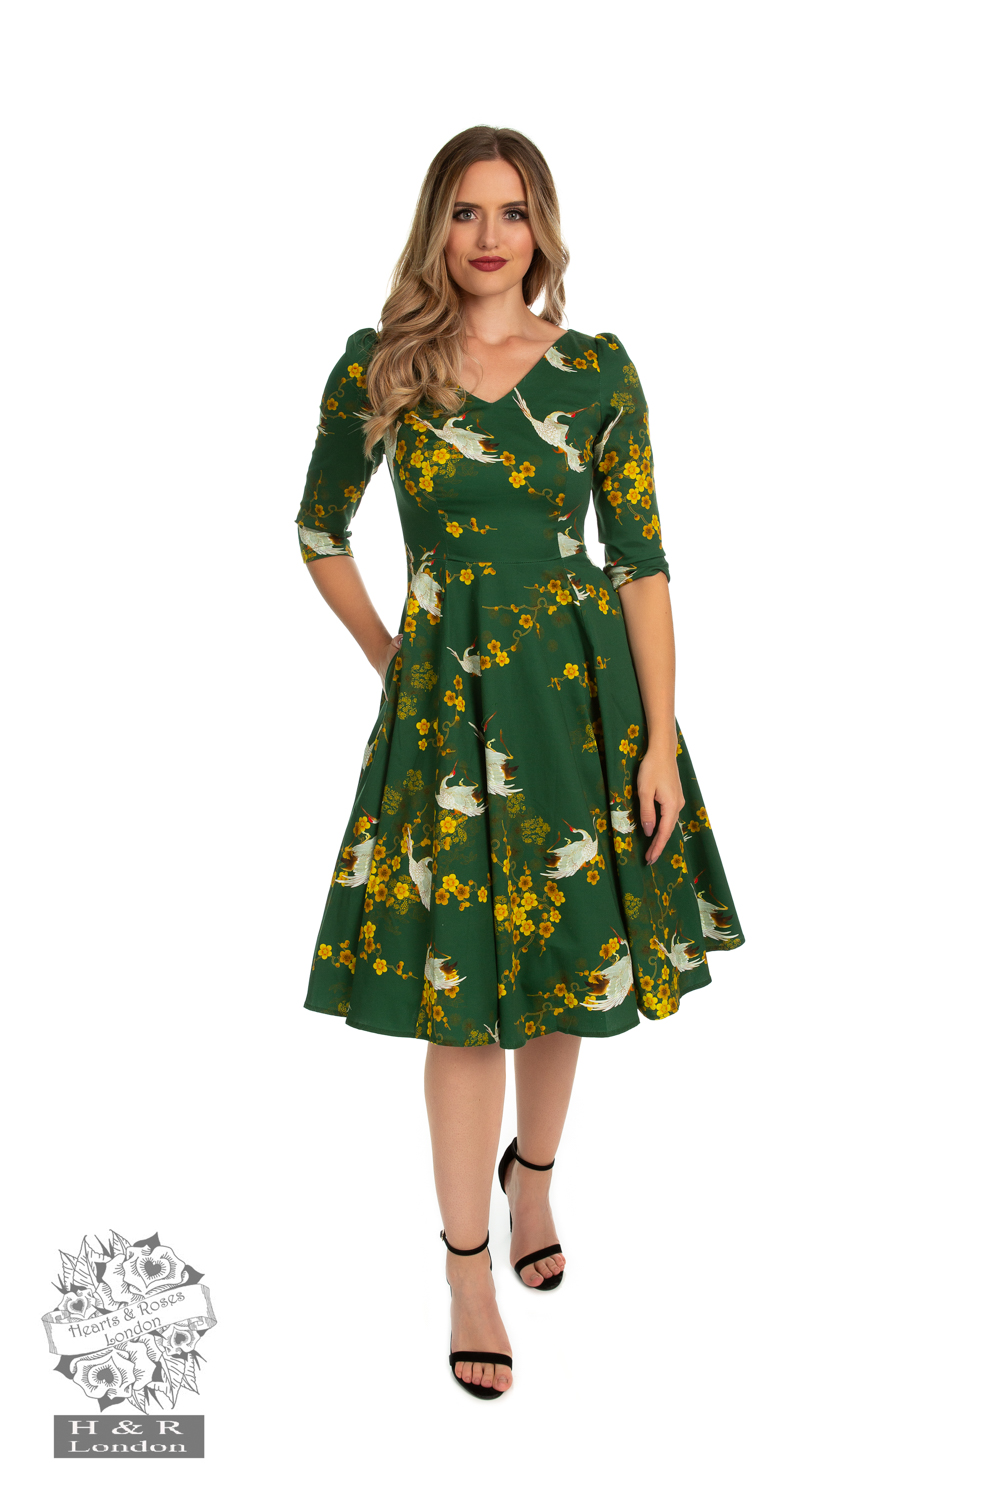 Green Blossom Swing Dress